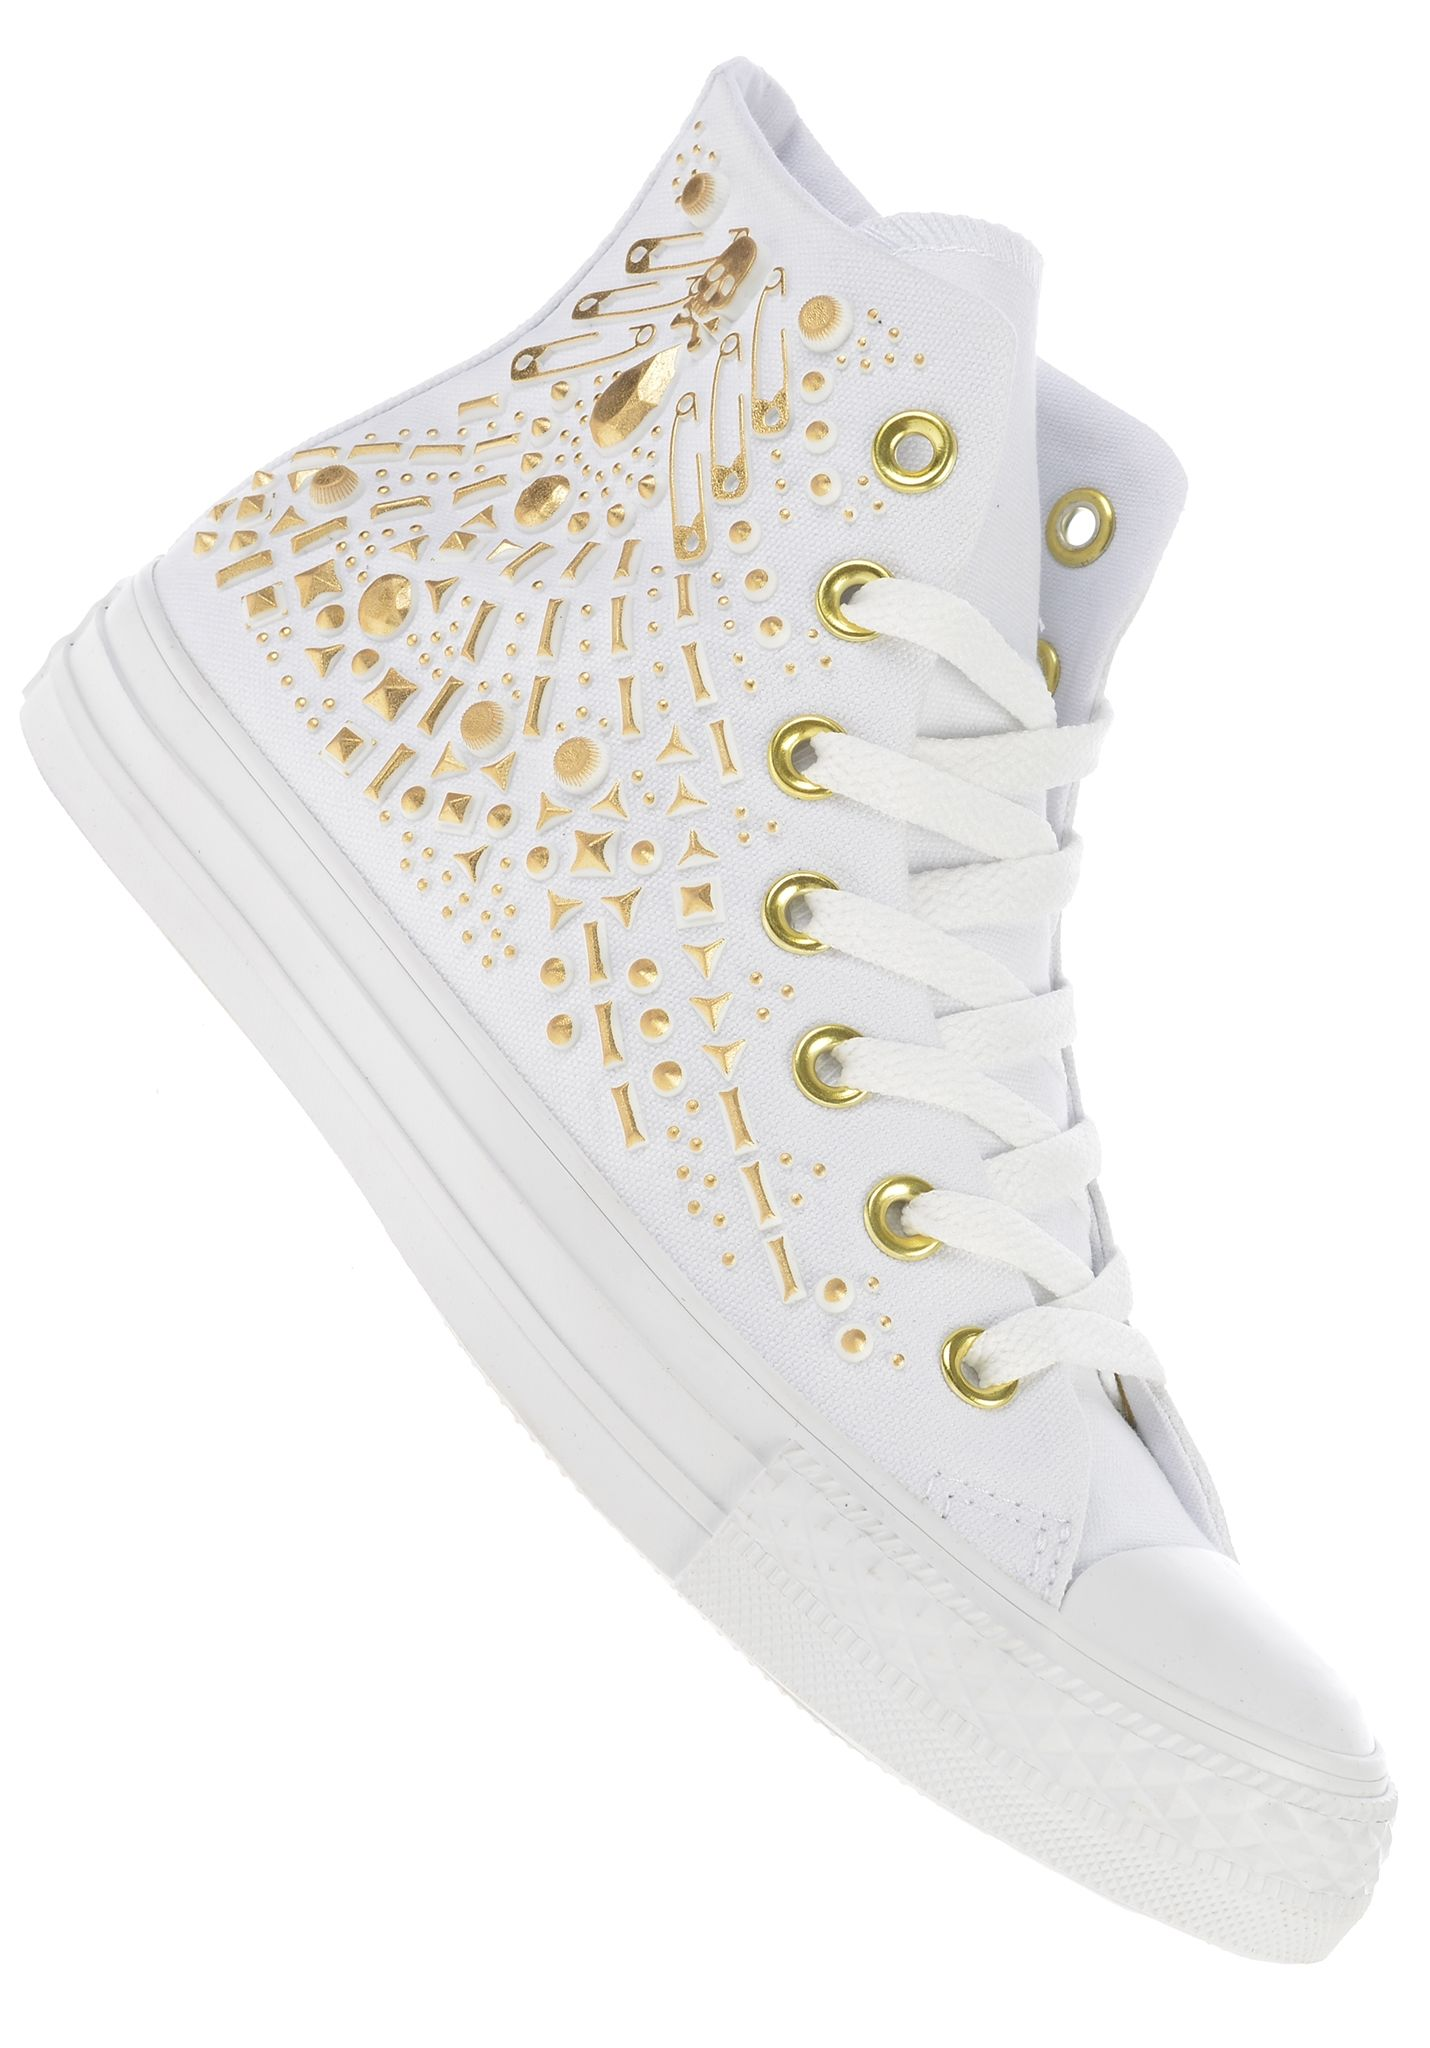 1cef2eb88942 Converse Chuck Taylor All Star Rhinestone Hi Canvas - Sneakers for Women -  White - Planet Sports